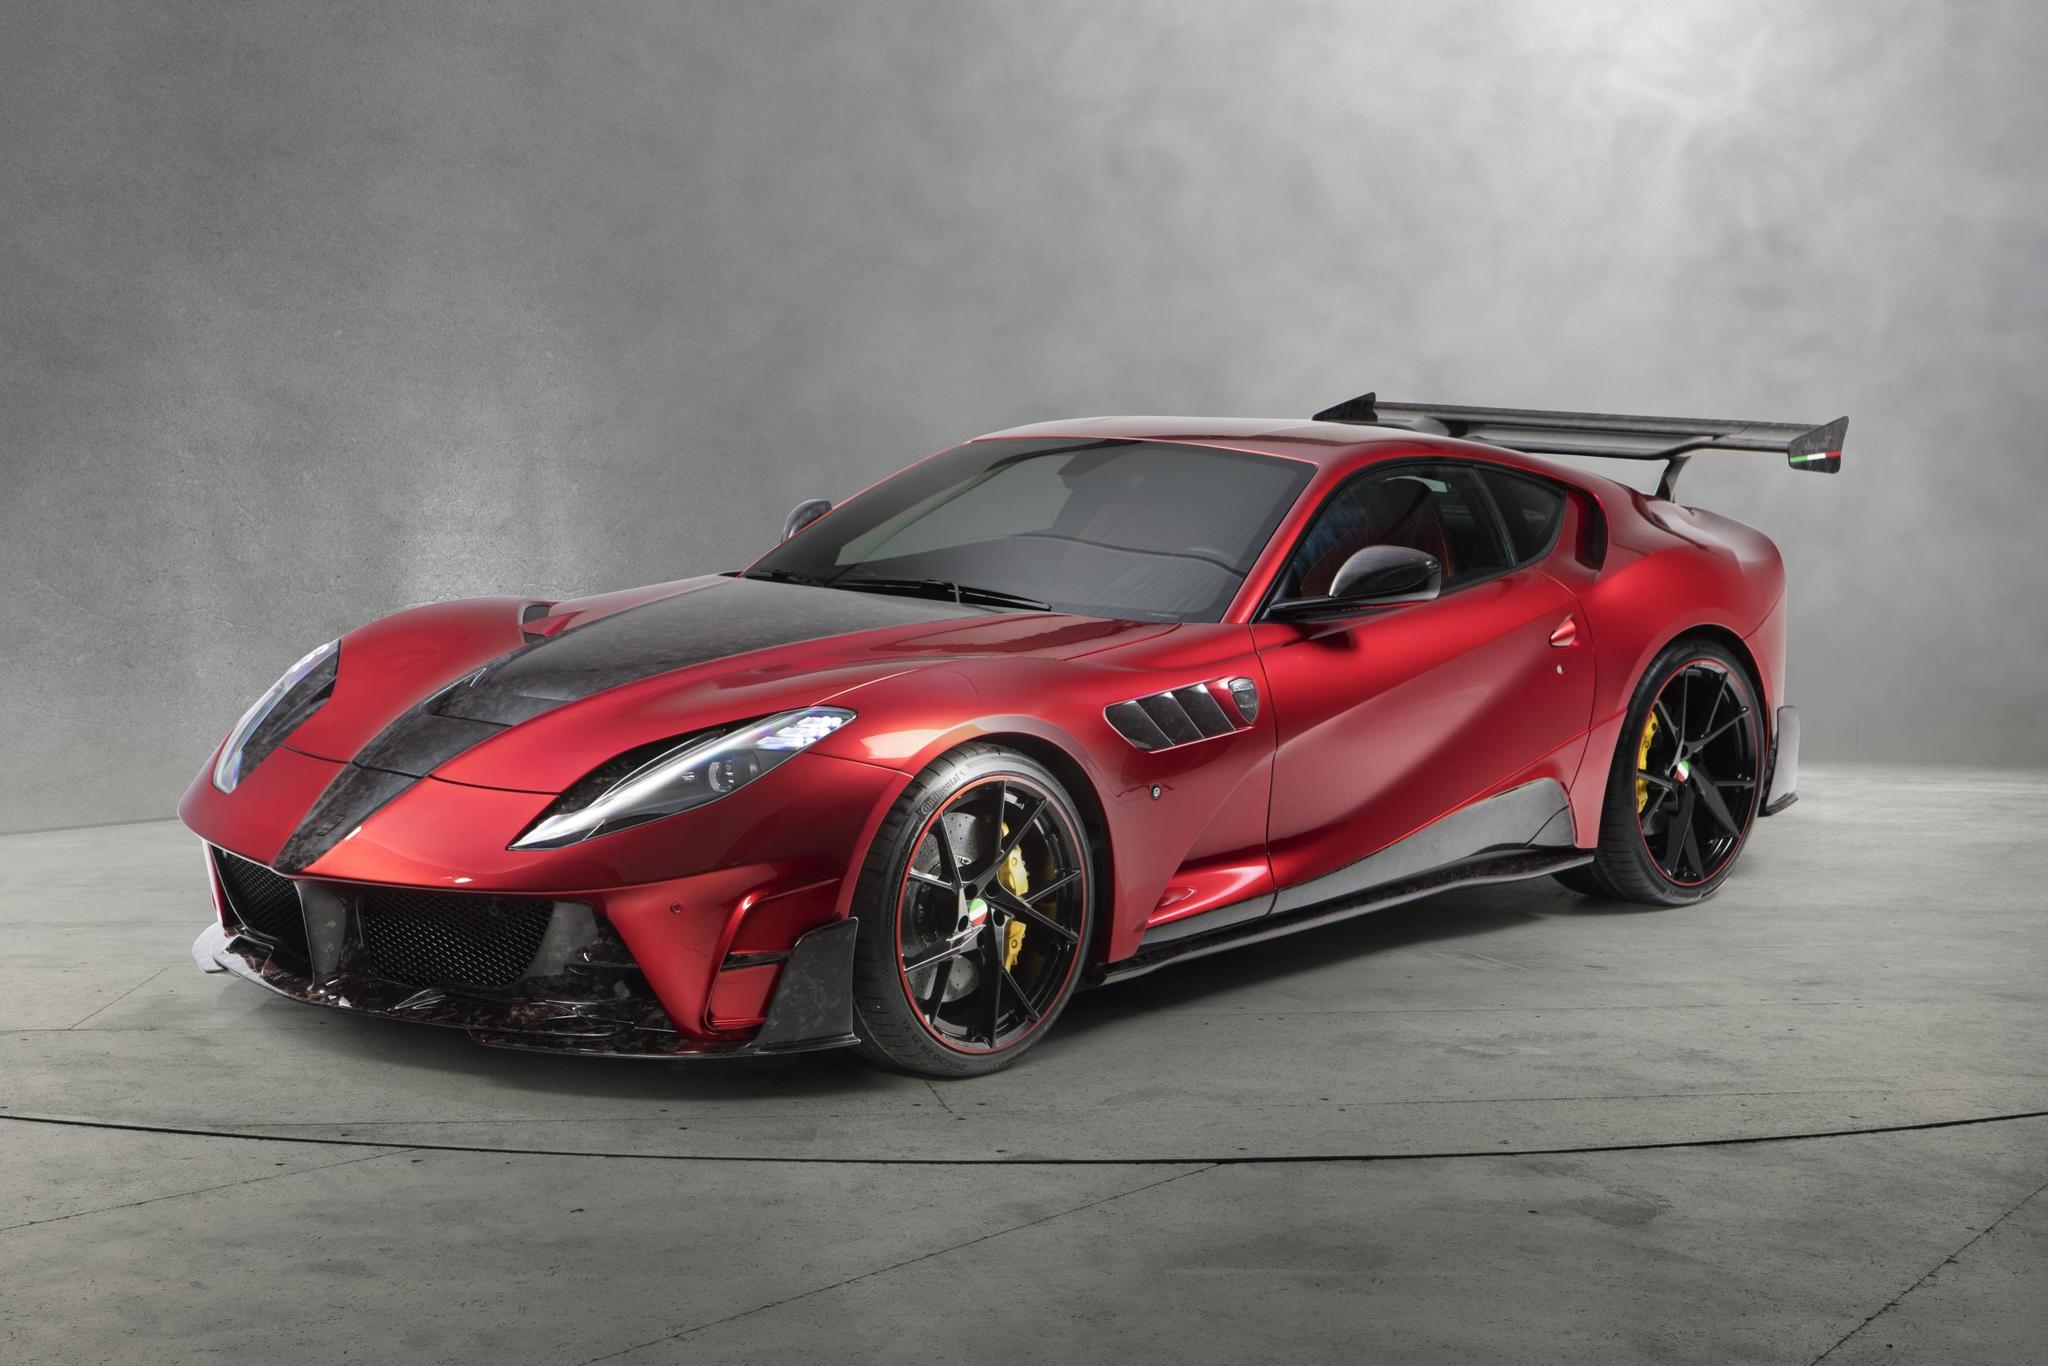 Mansory Body Kit For Ferrari 812 Superfast Buy With Door To Door Worldwide Shipping Hodoor Performance